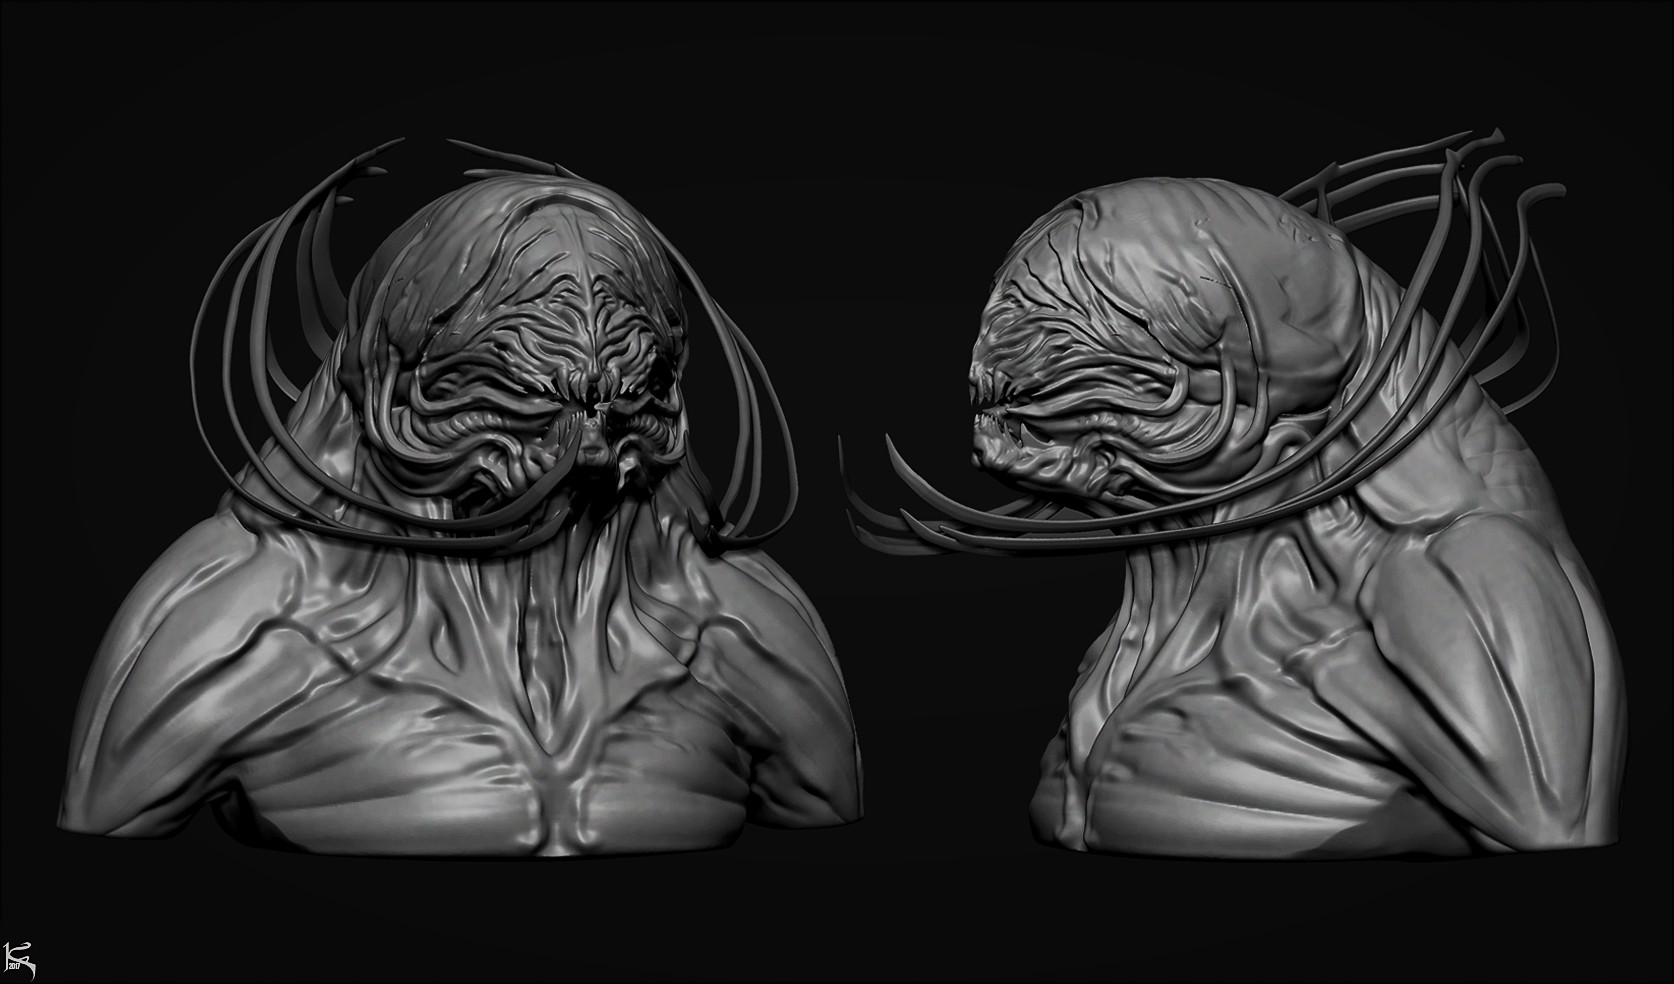 kenny-carmody-creature35-zbrush-screengrab04.jpg